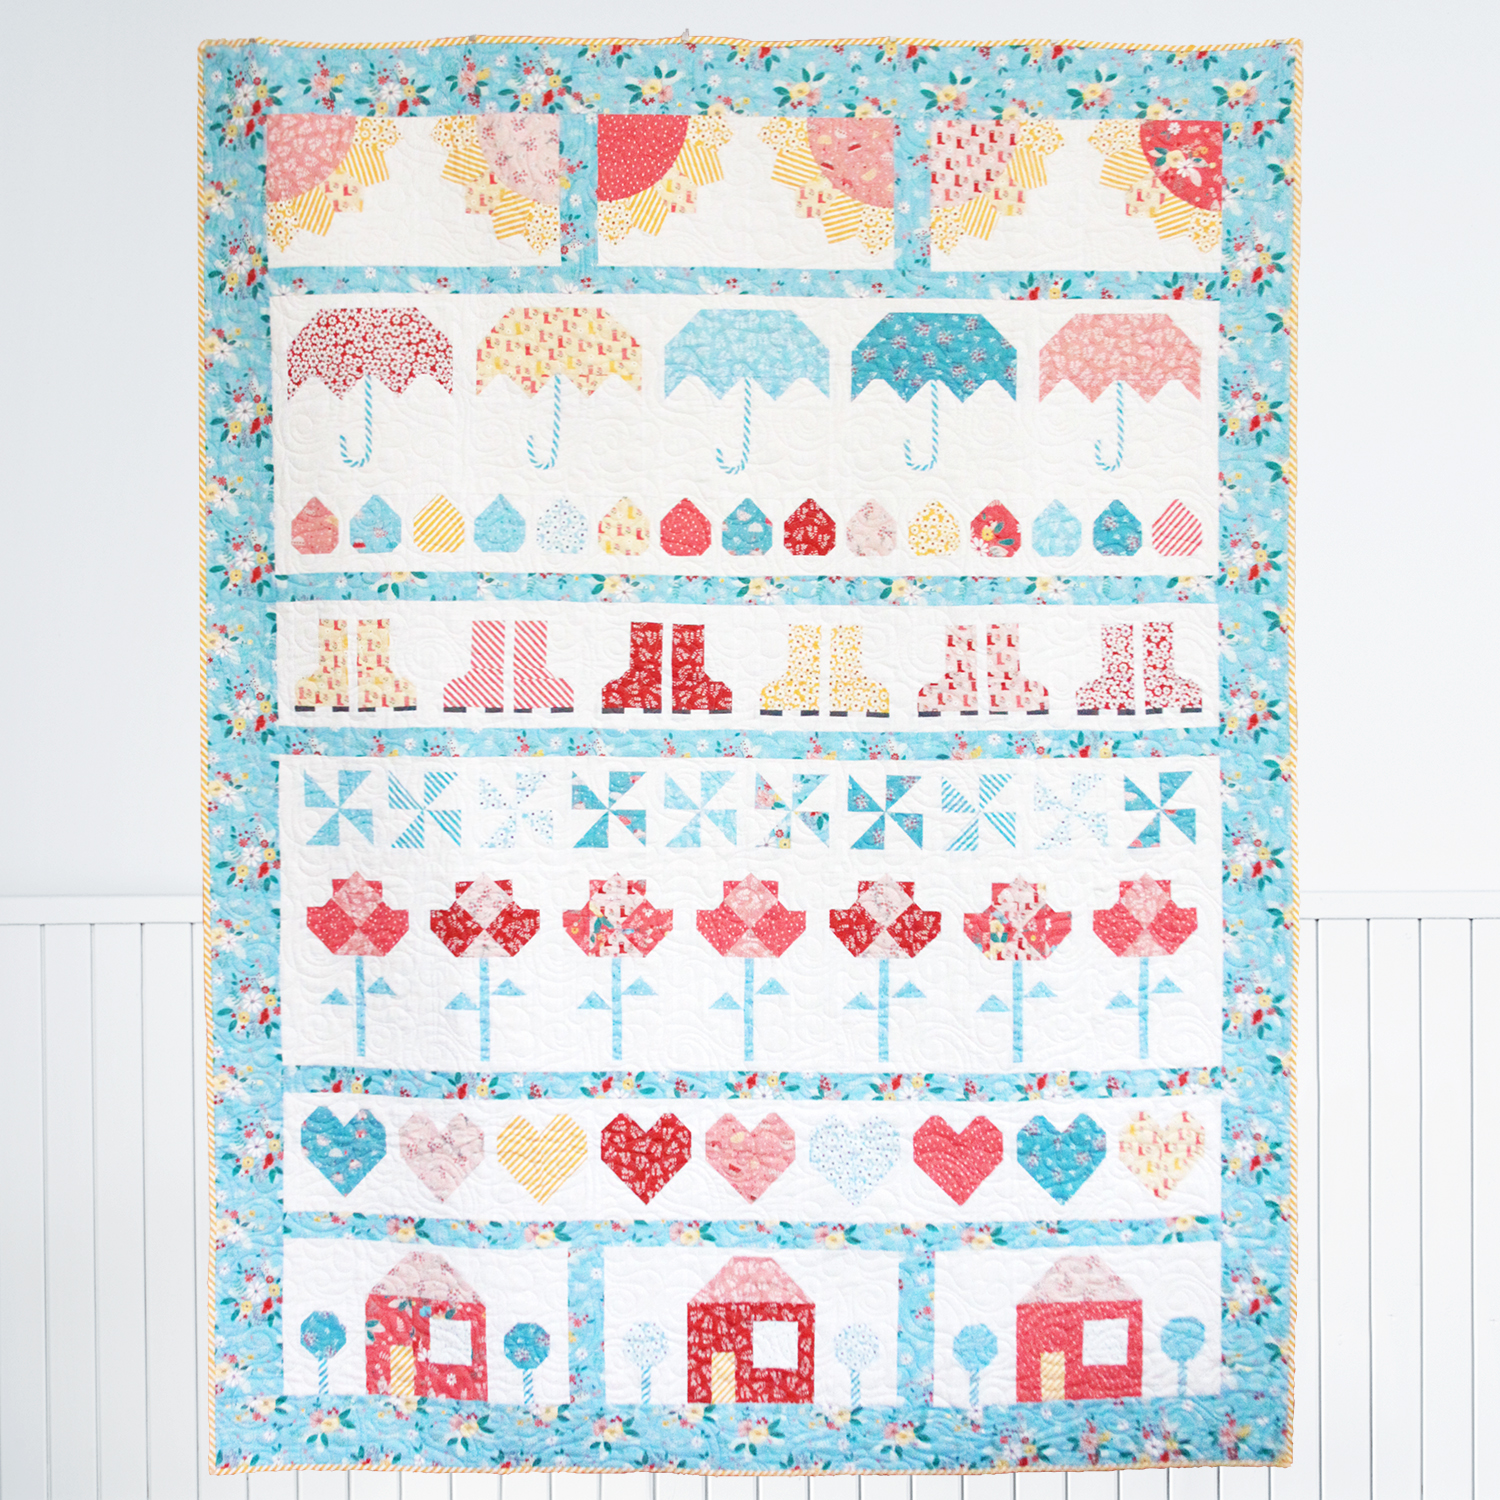 Singing in the Rain Quilt